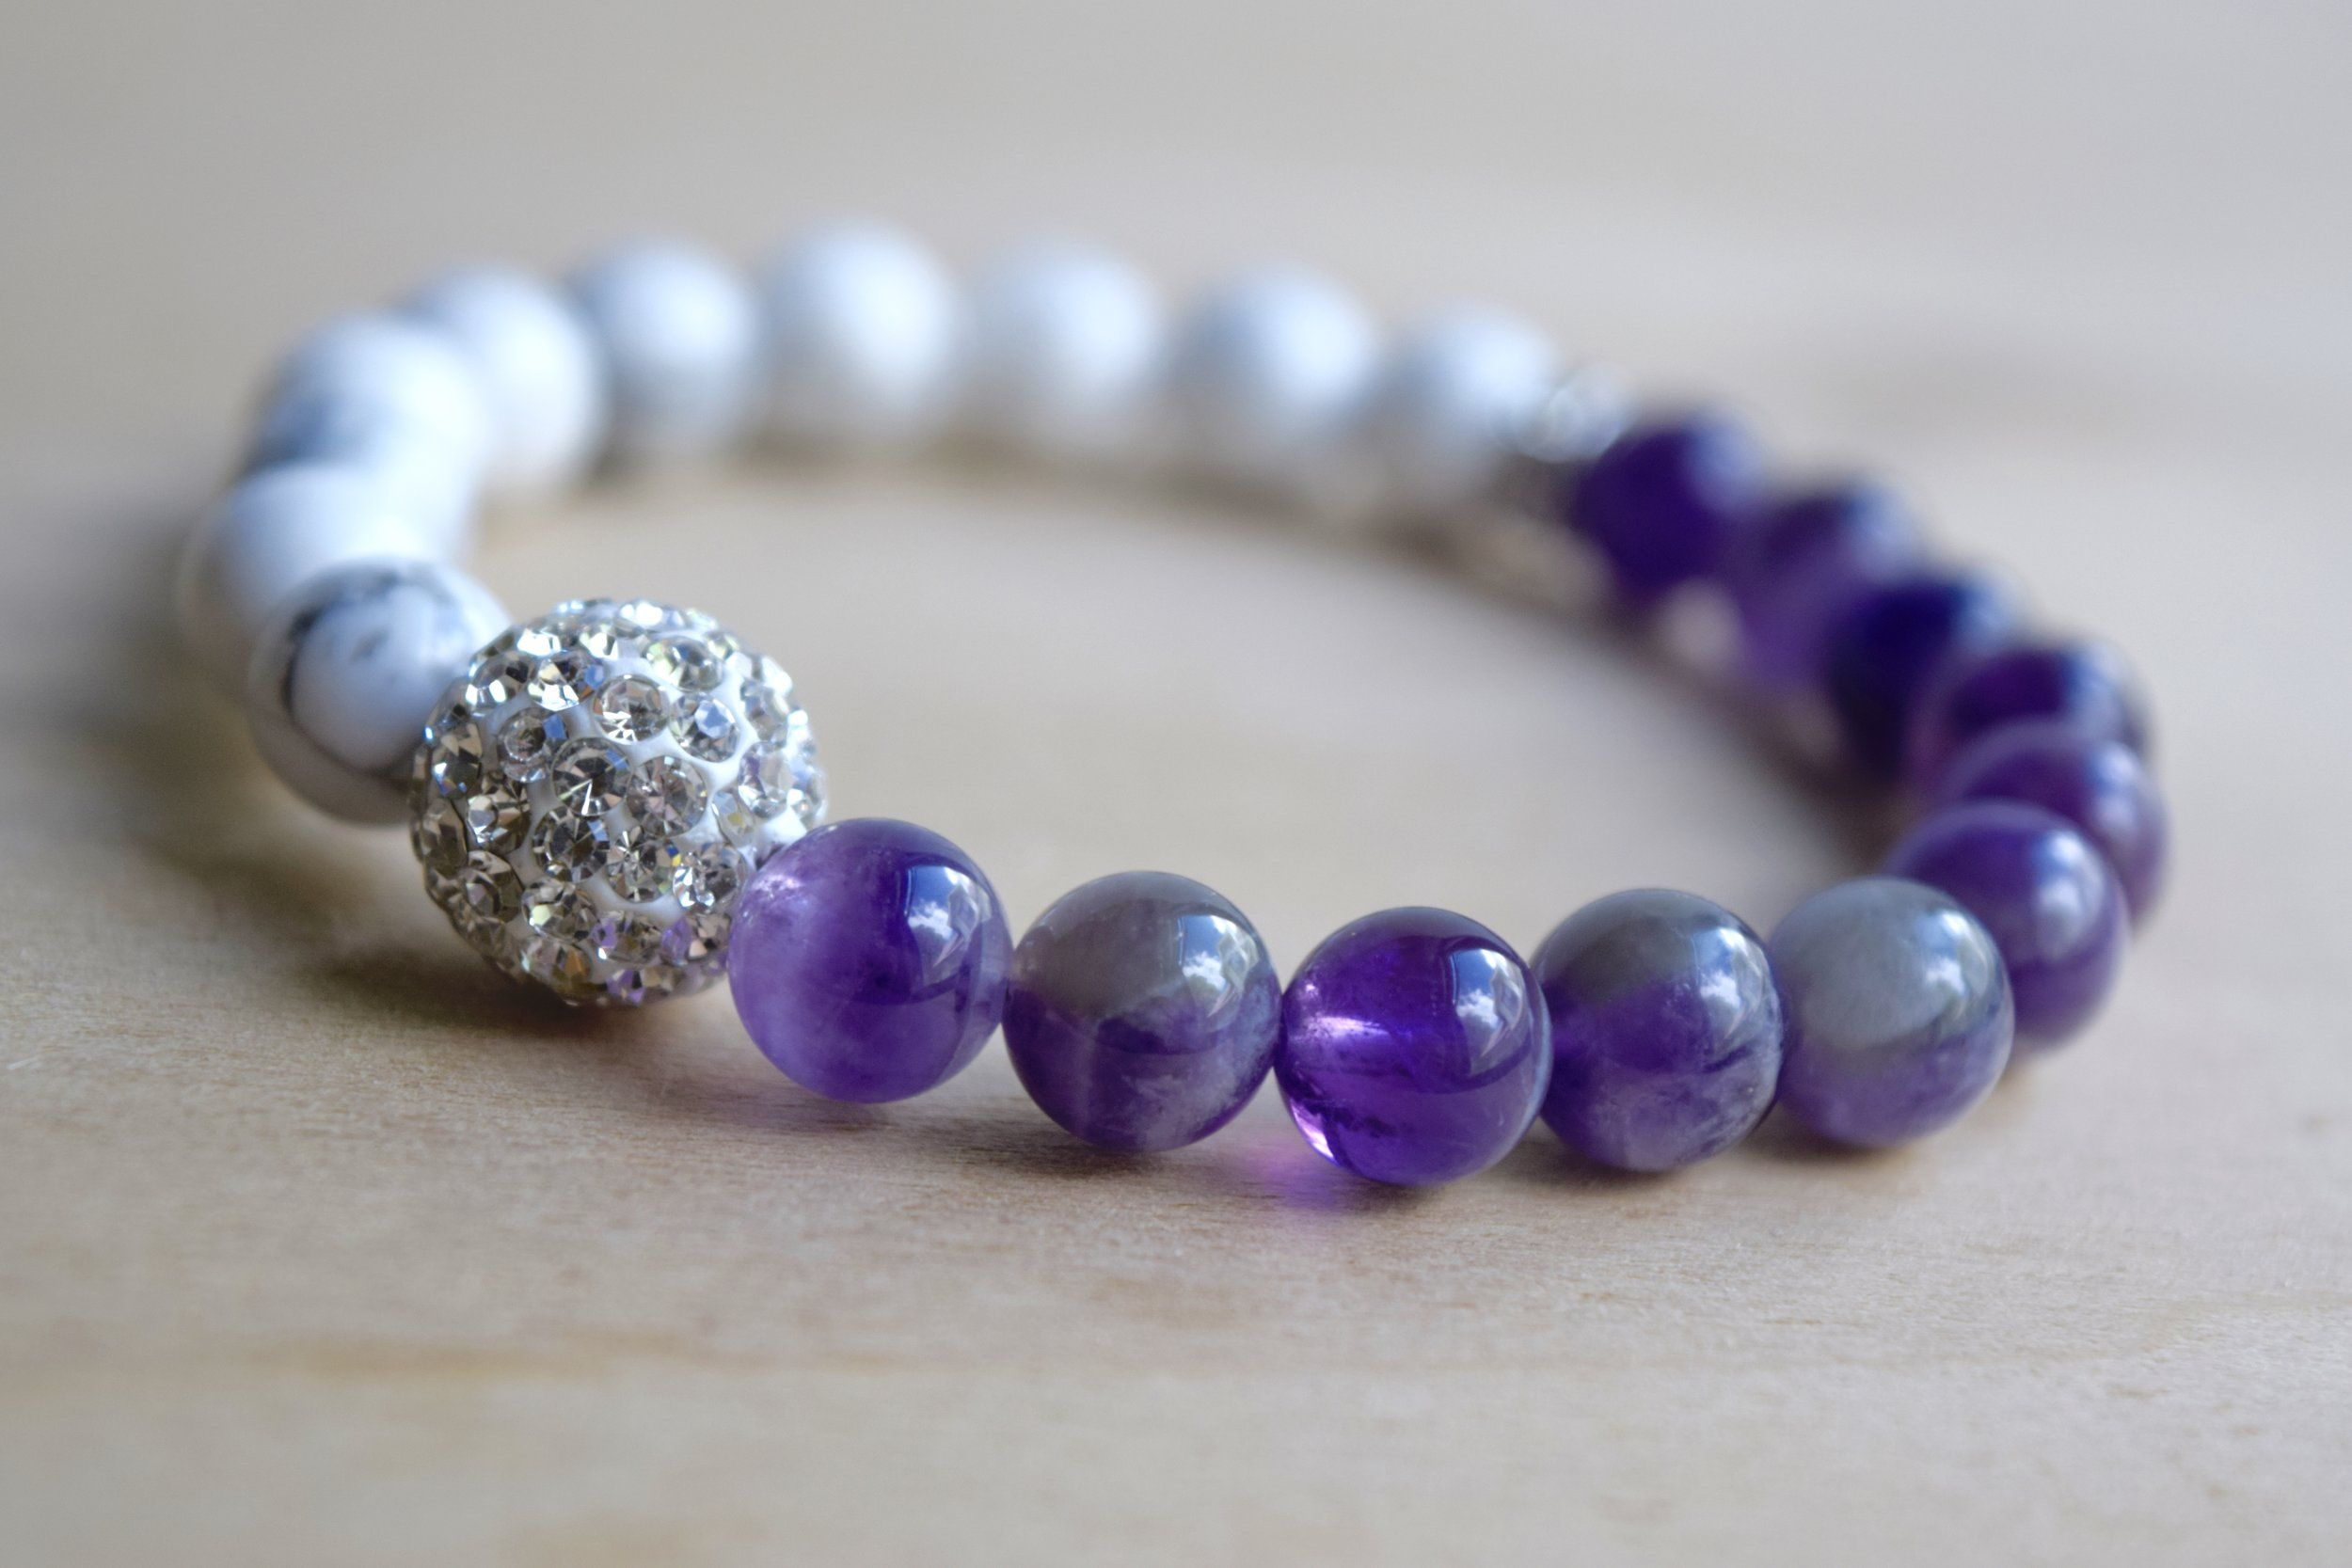 CALM AND PROTECTED // Howlite and Amethyst Meditation Bracelet with Rhinestone Accent Beads ? click the picture to purchase on www.mumblesandthings.com